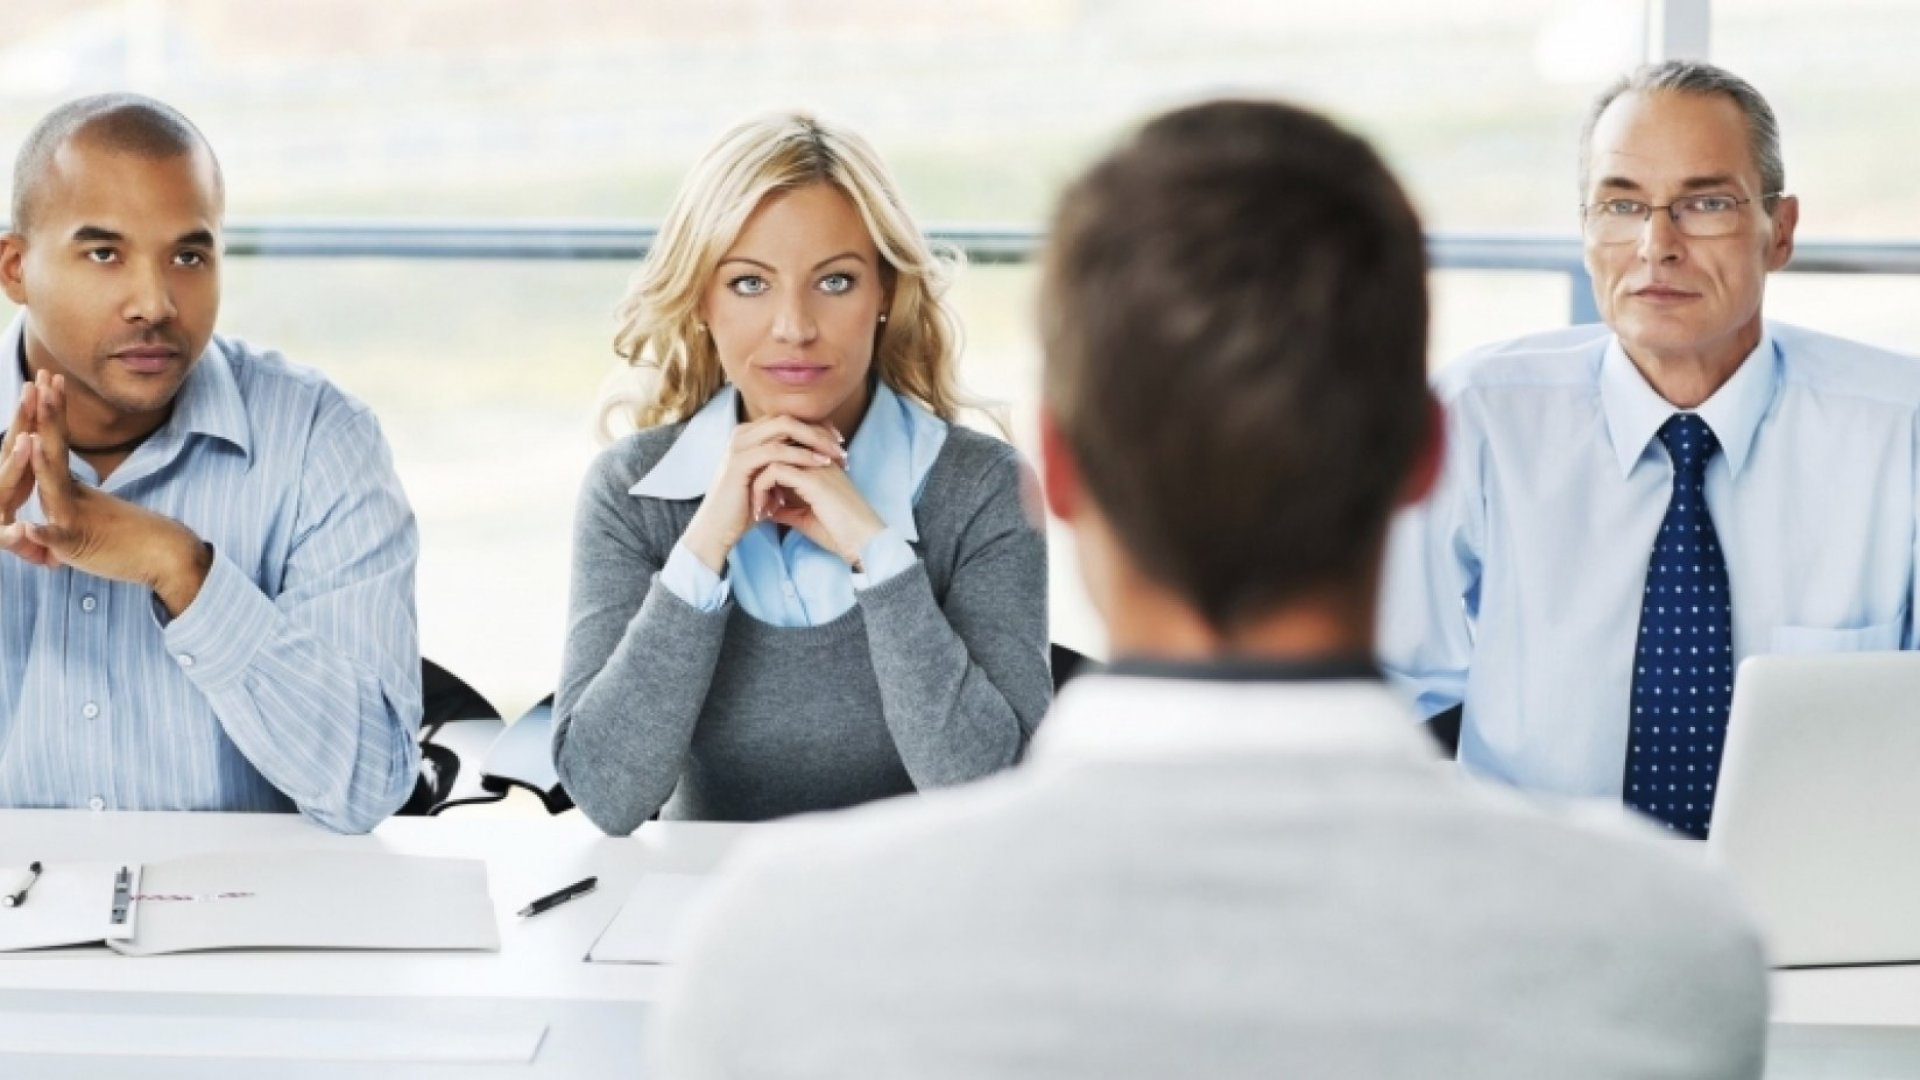 5 Smart Habits That Will Help You Nail That Job Interview